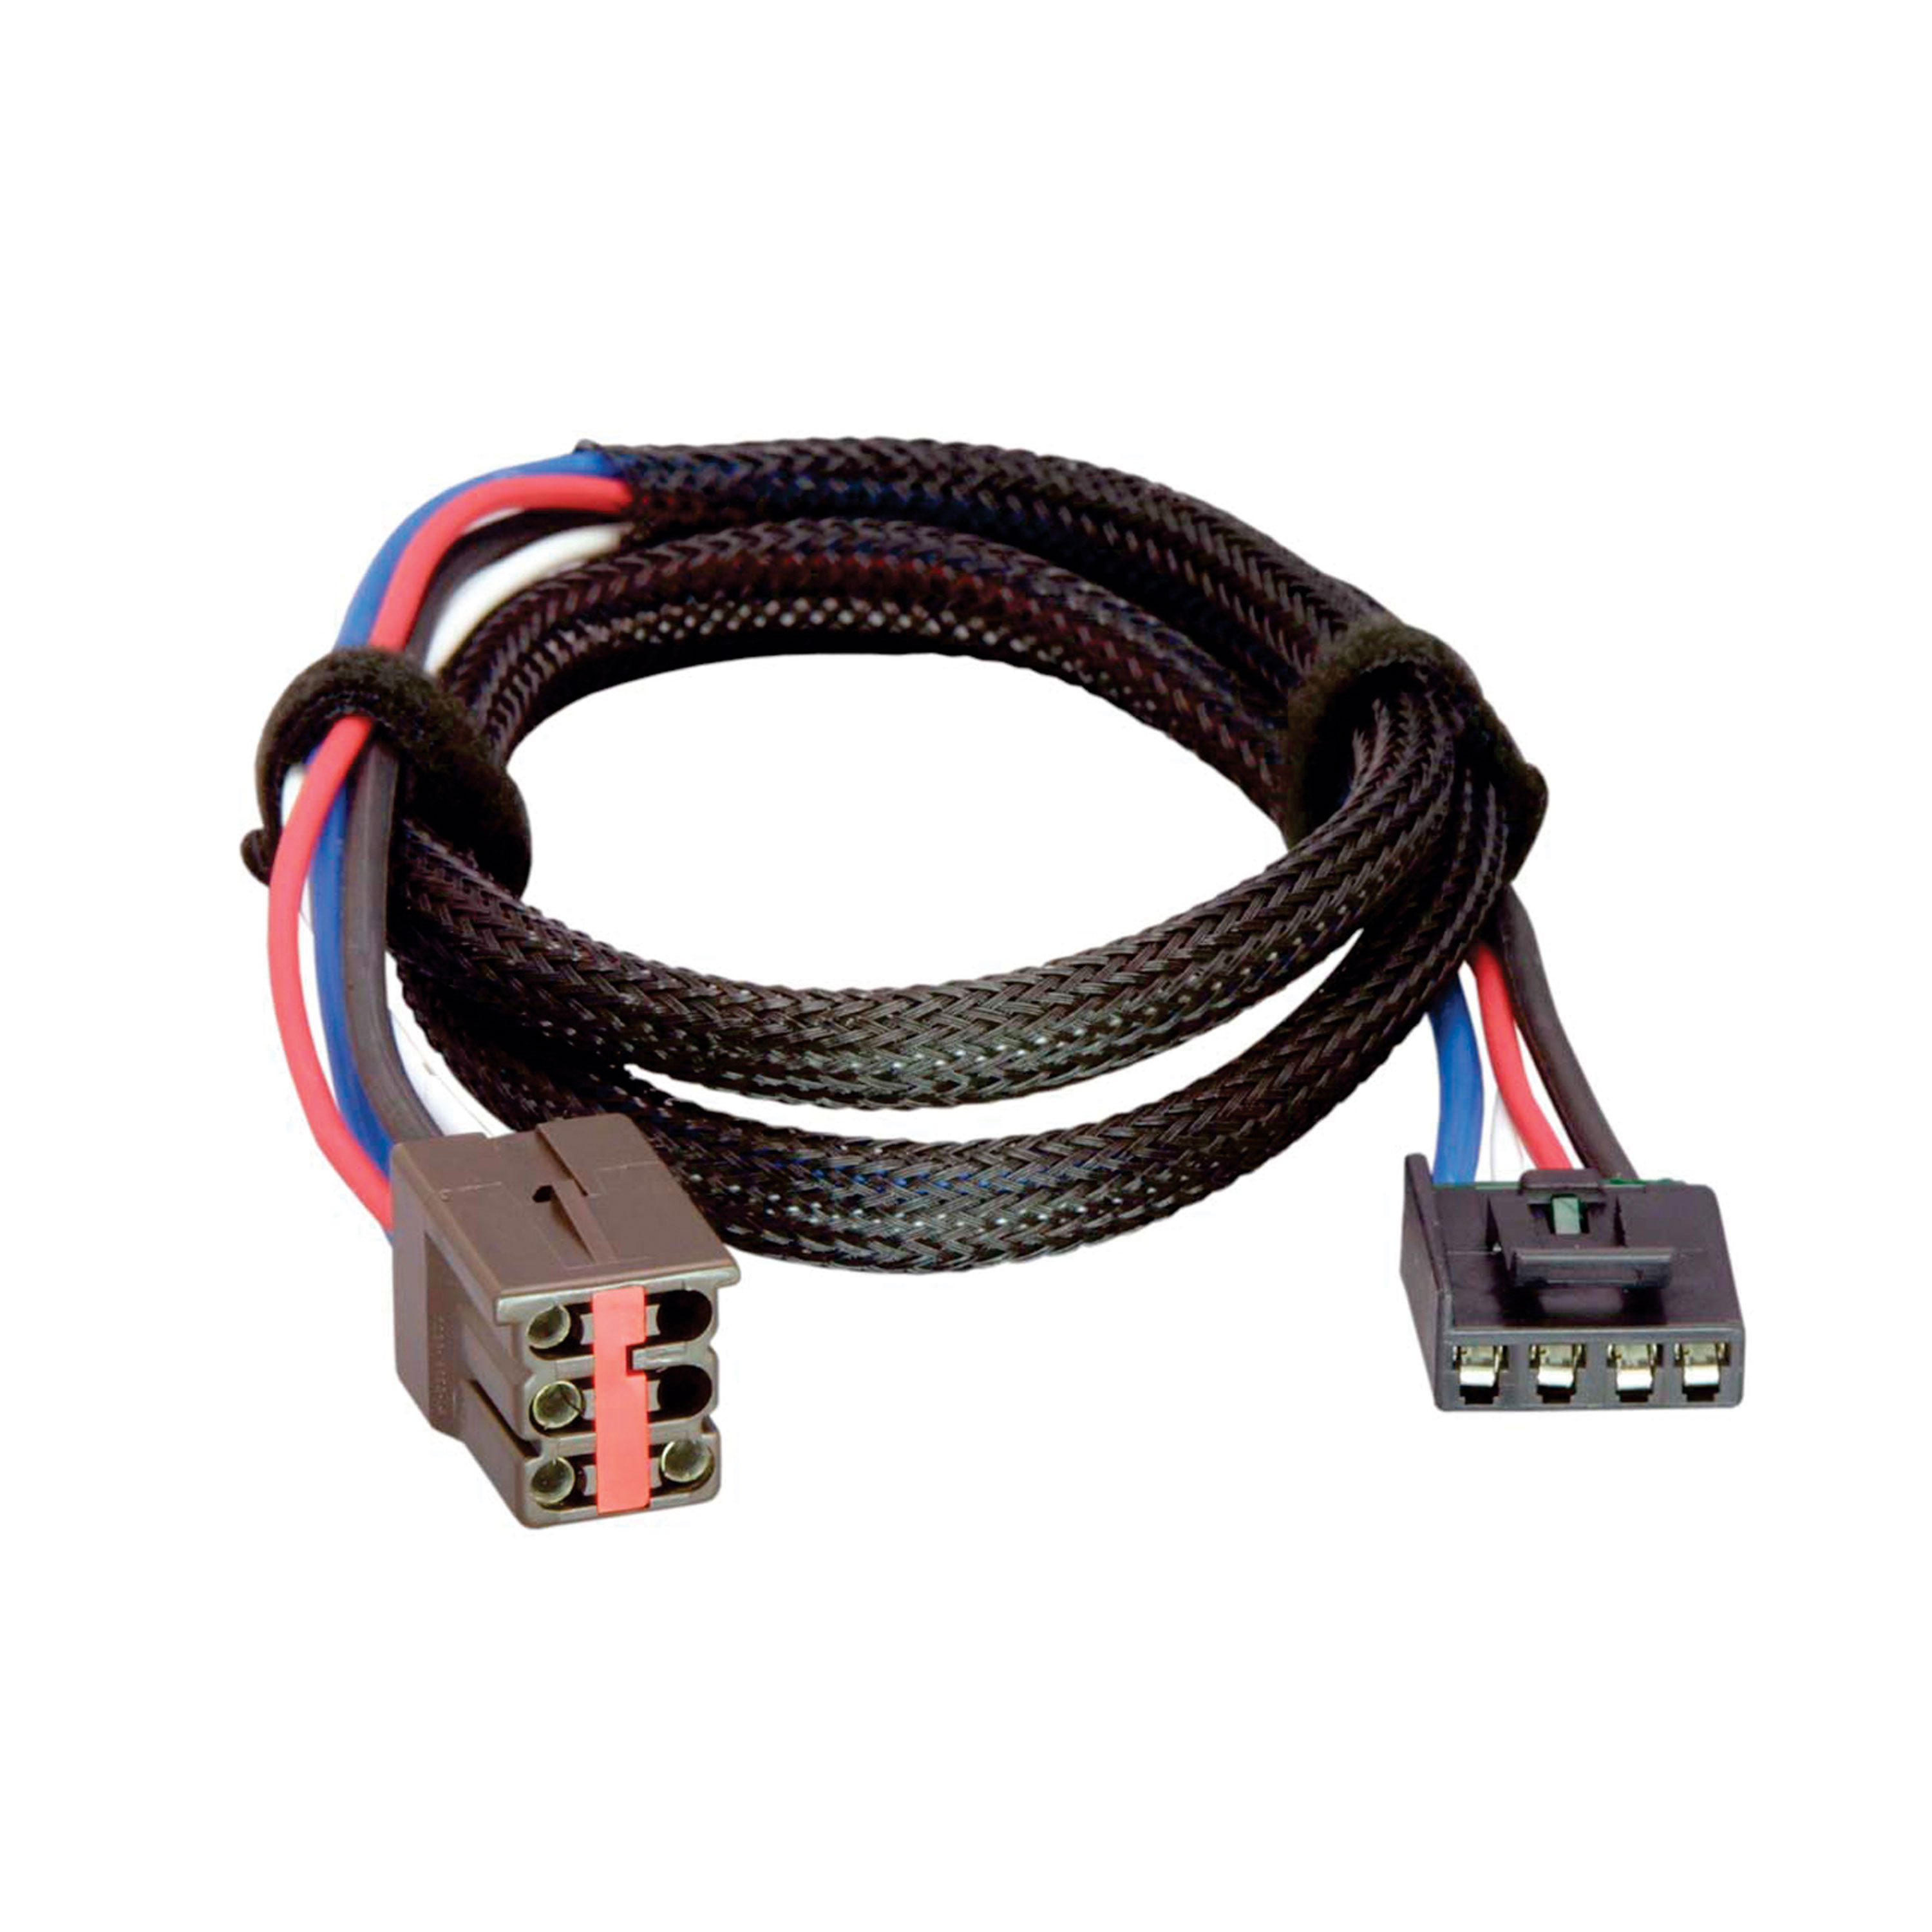 medium resolution of tekonsha 3035 p trailer brake control wiring harness 2 plugs ford subwoofer cable to speaker wire adapter e 450 ford wiring harness adapter